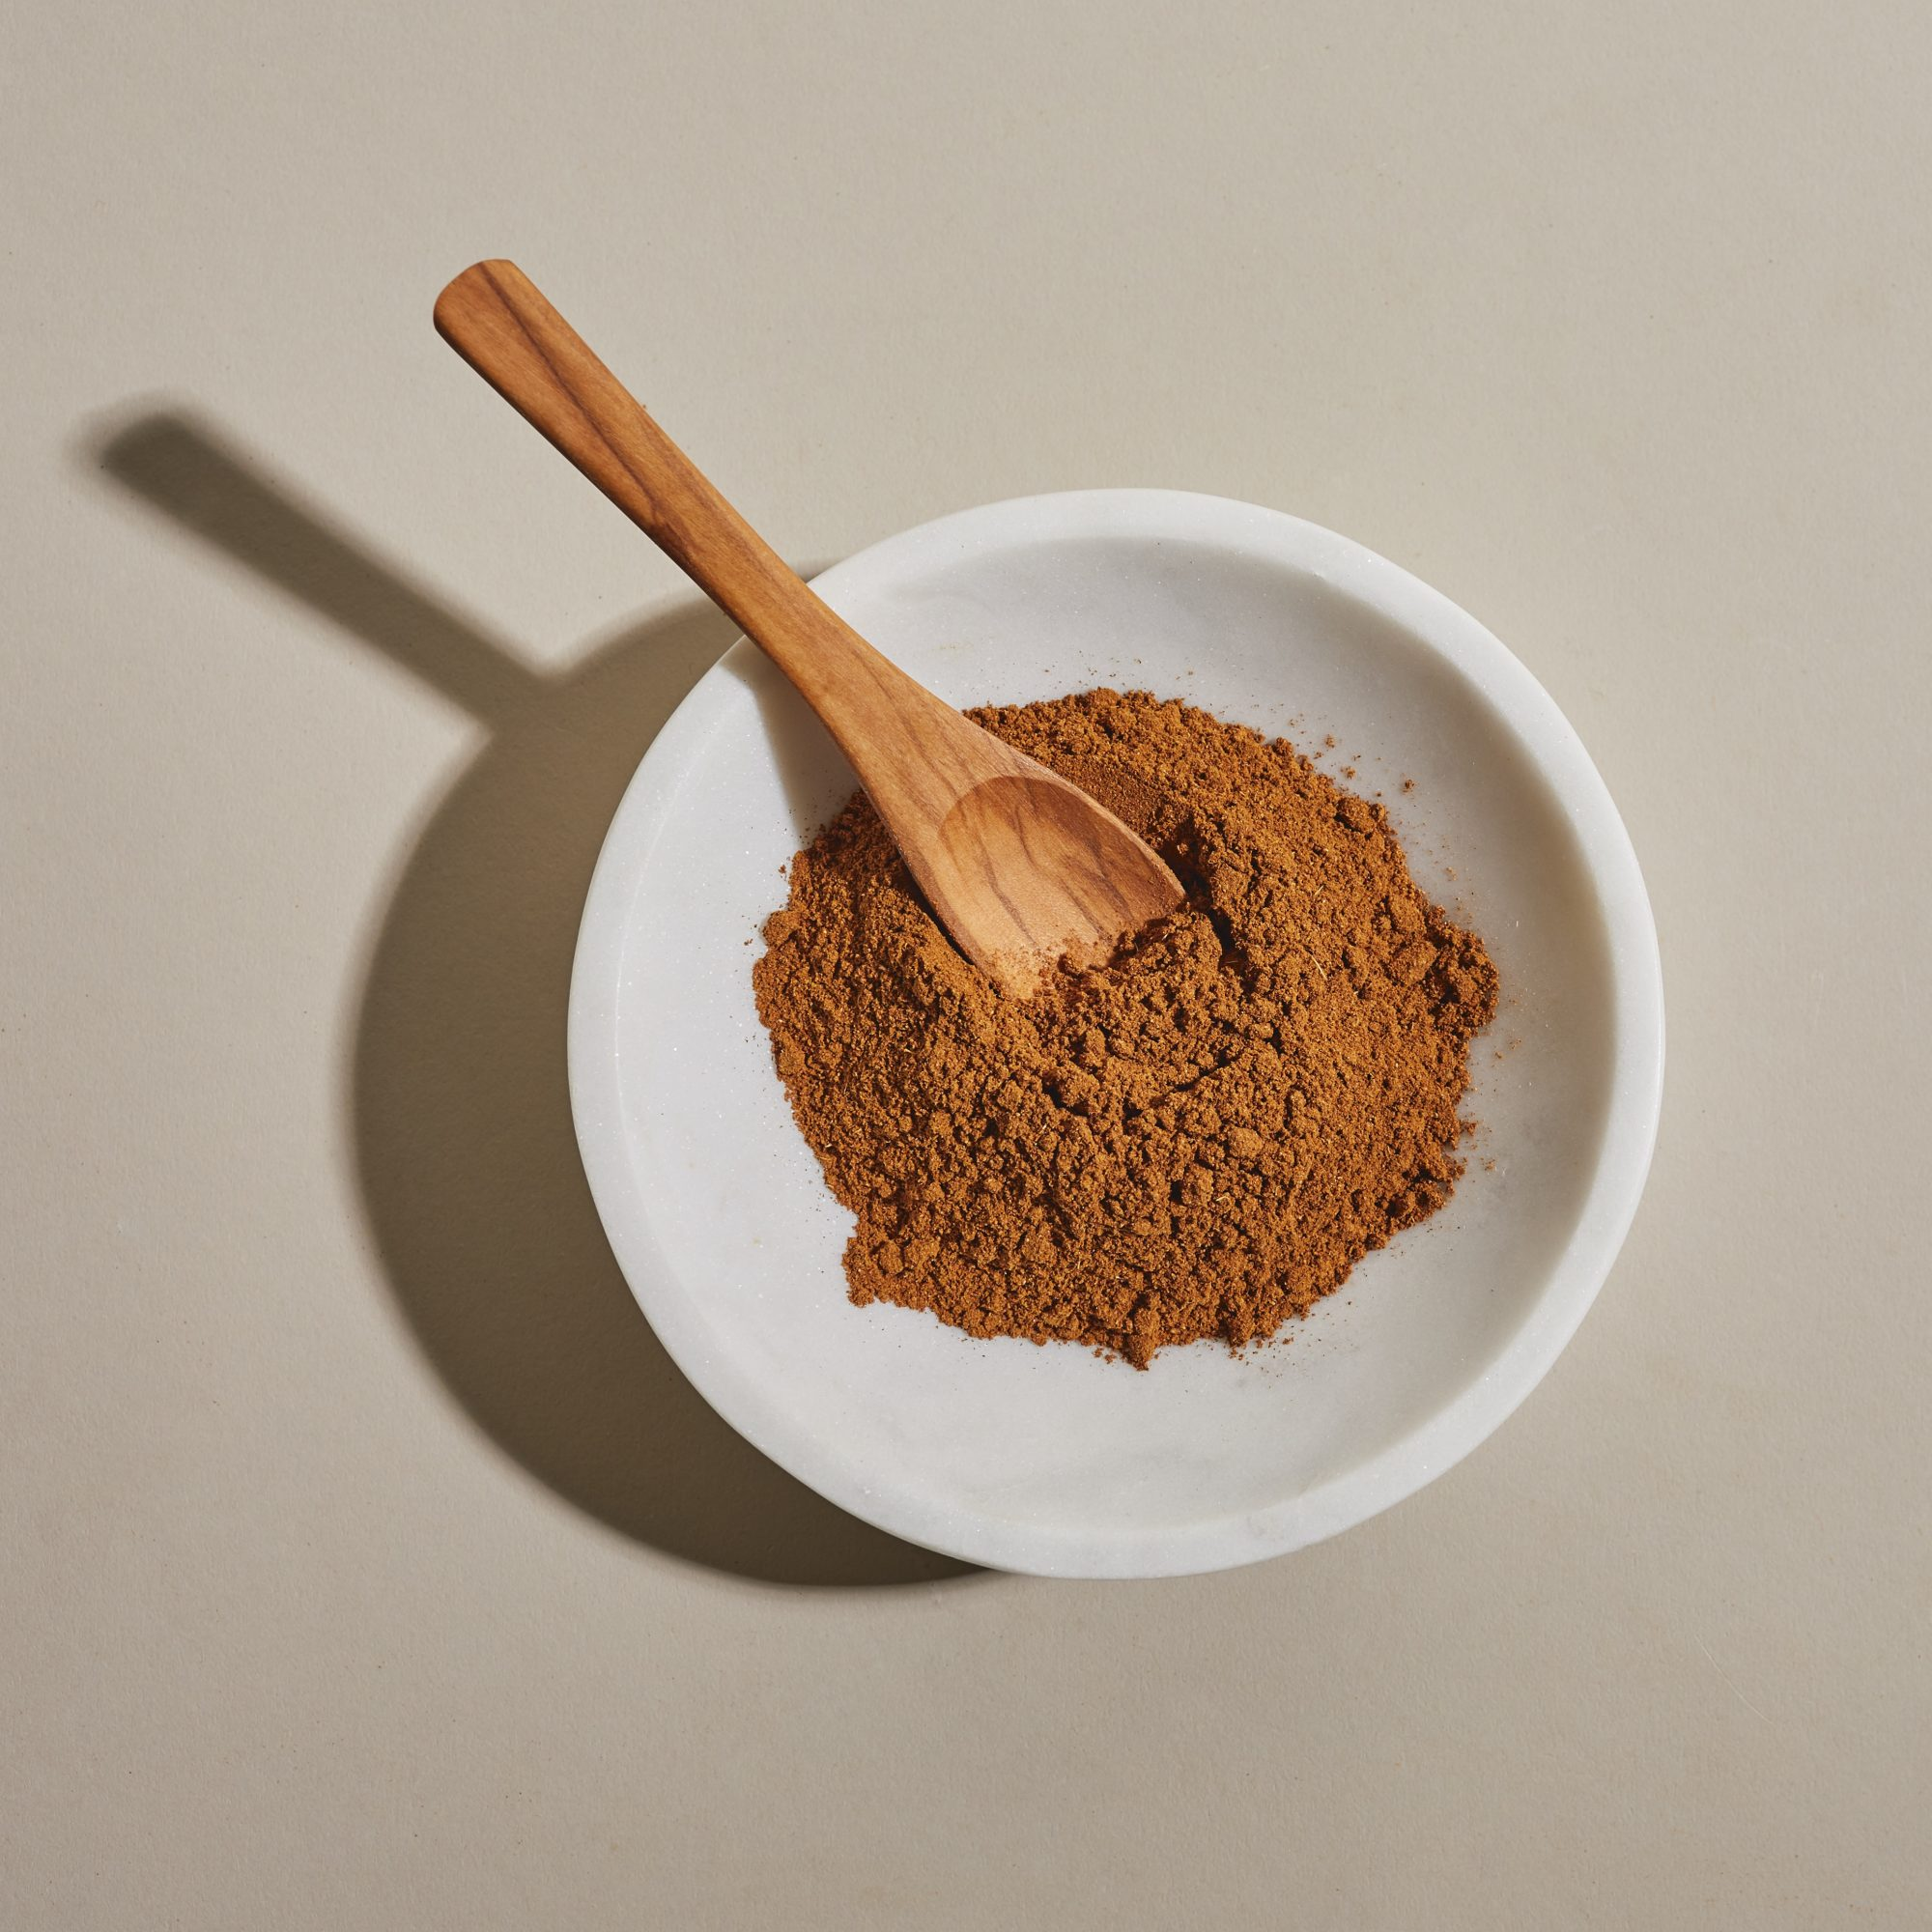 five-spice powder in bowl with spoon